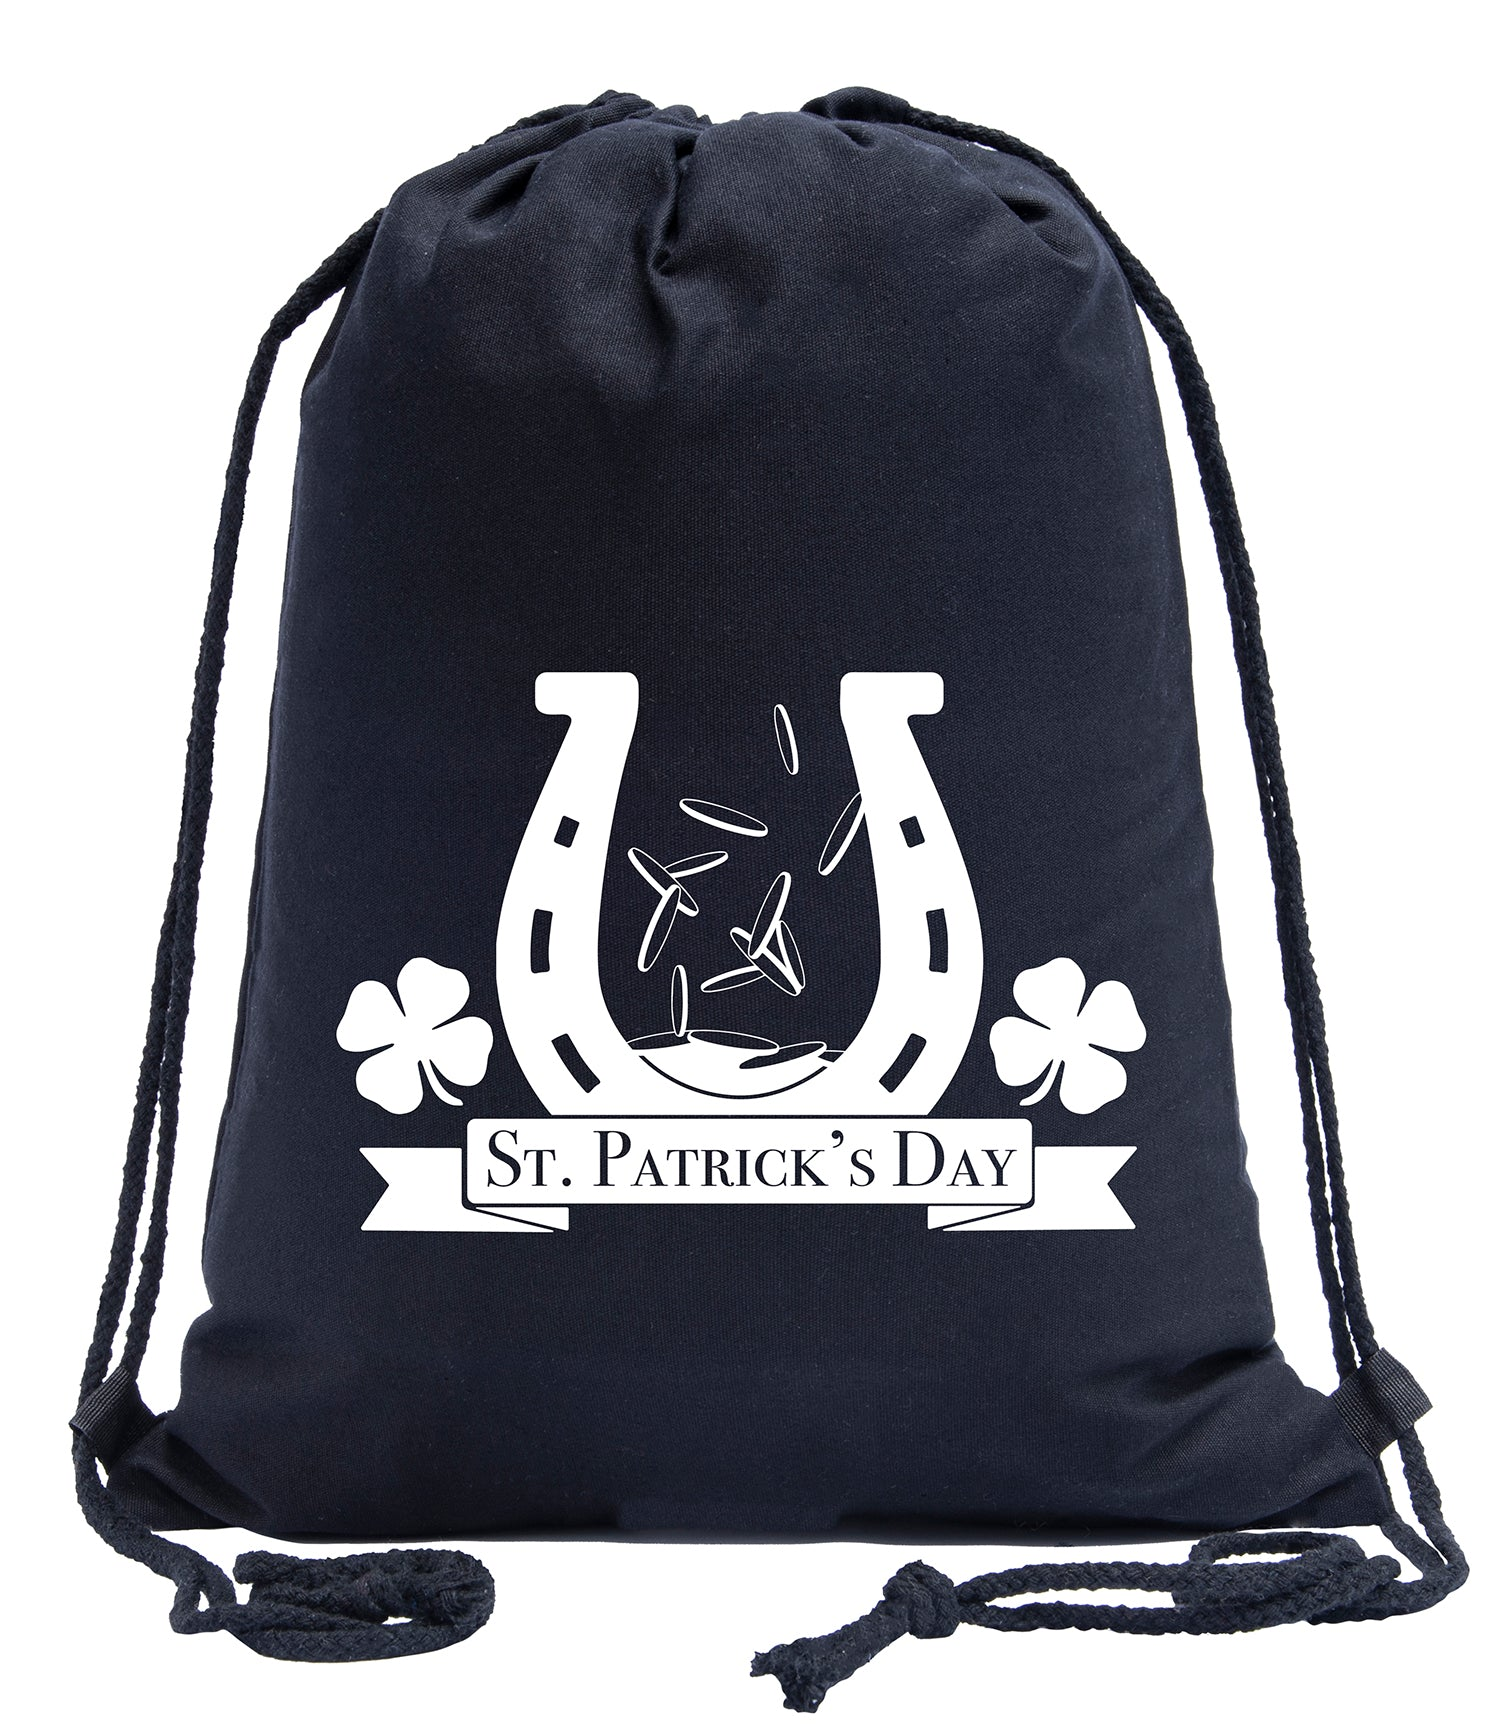 Horseshoe, Coins and Shamrocks Cotton Drawstring Bag